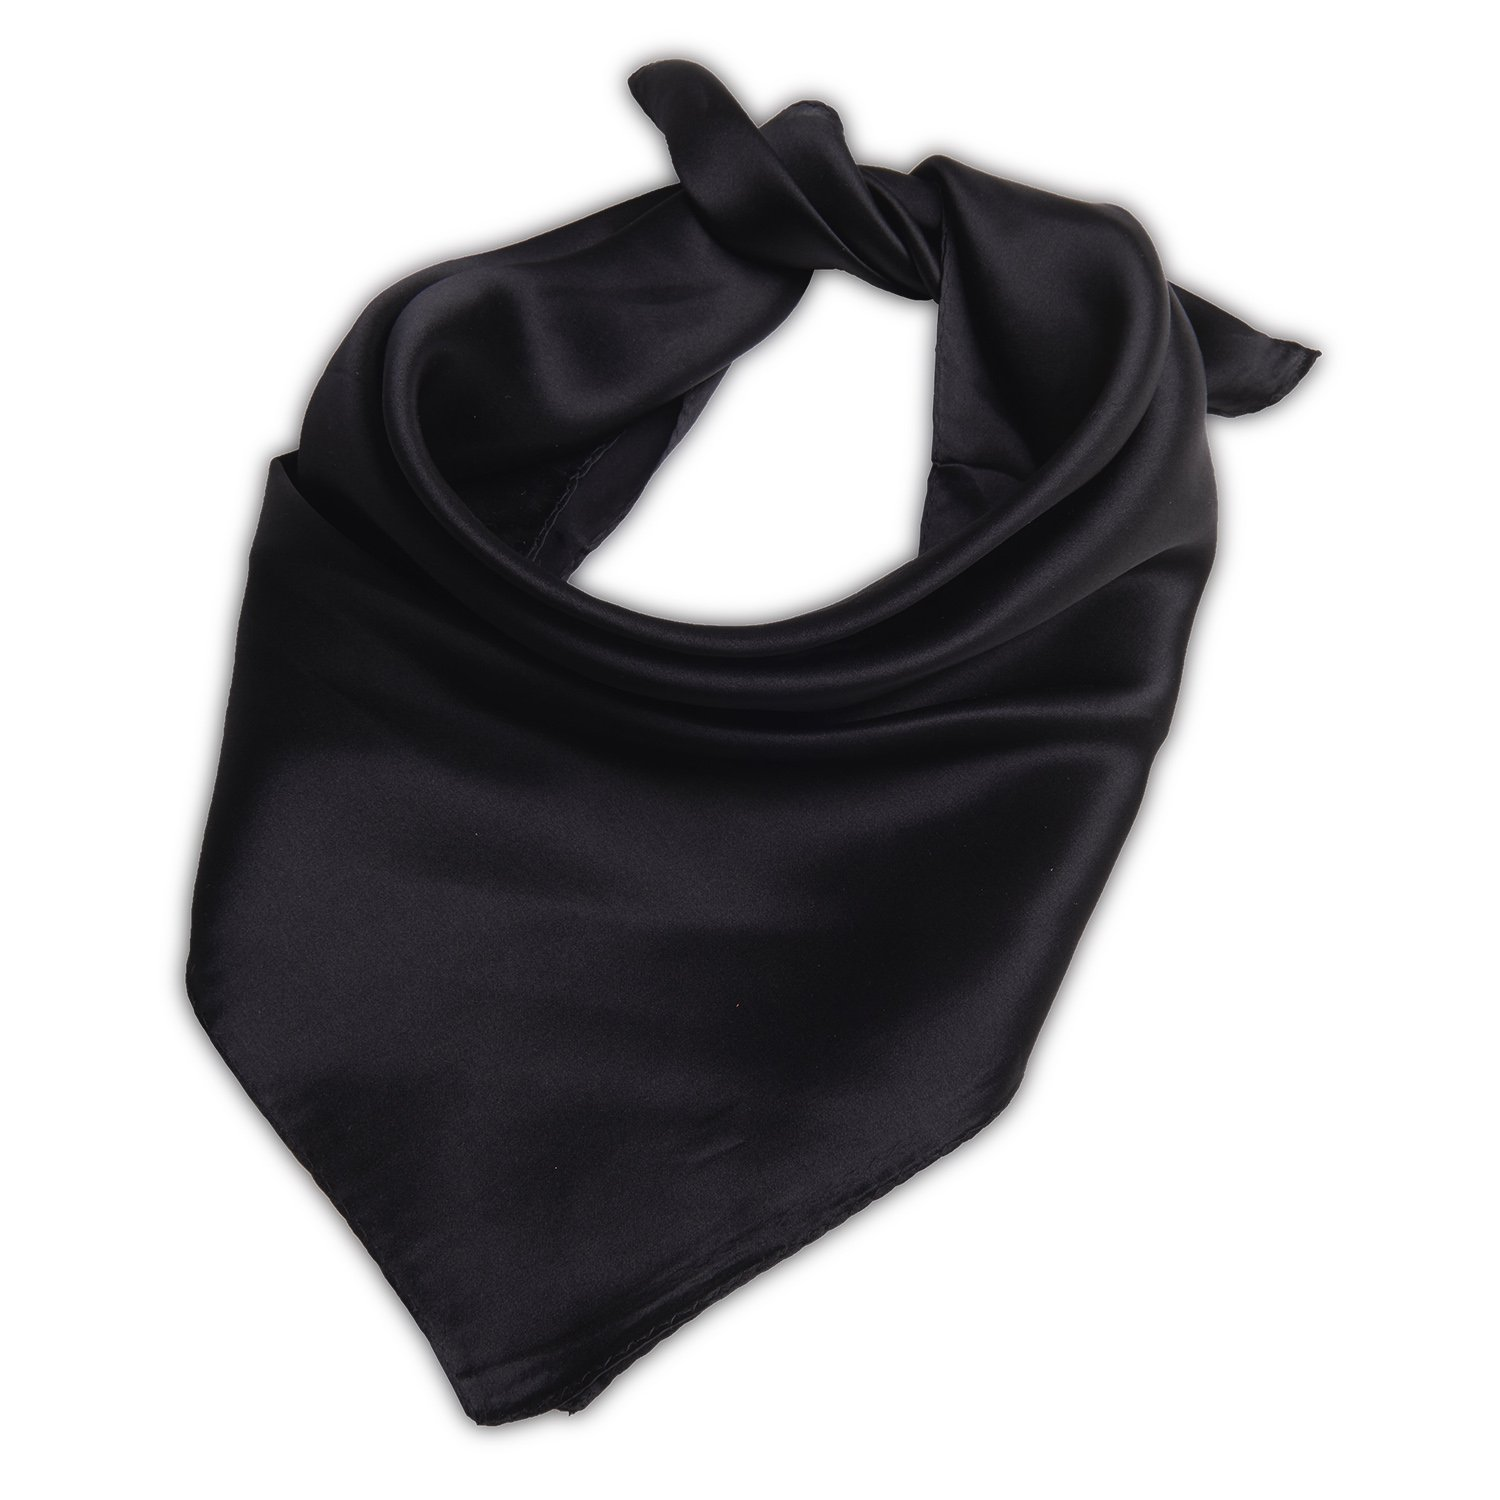 ba8f33f690f9e Silk Scarf Square Women Scarfs Solid Color Scarves Black at Amazon Women's  Clothing store: